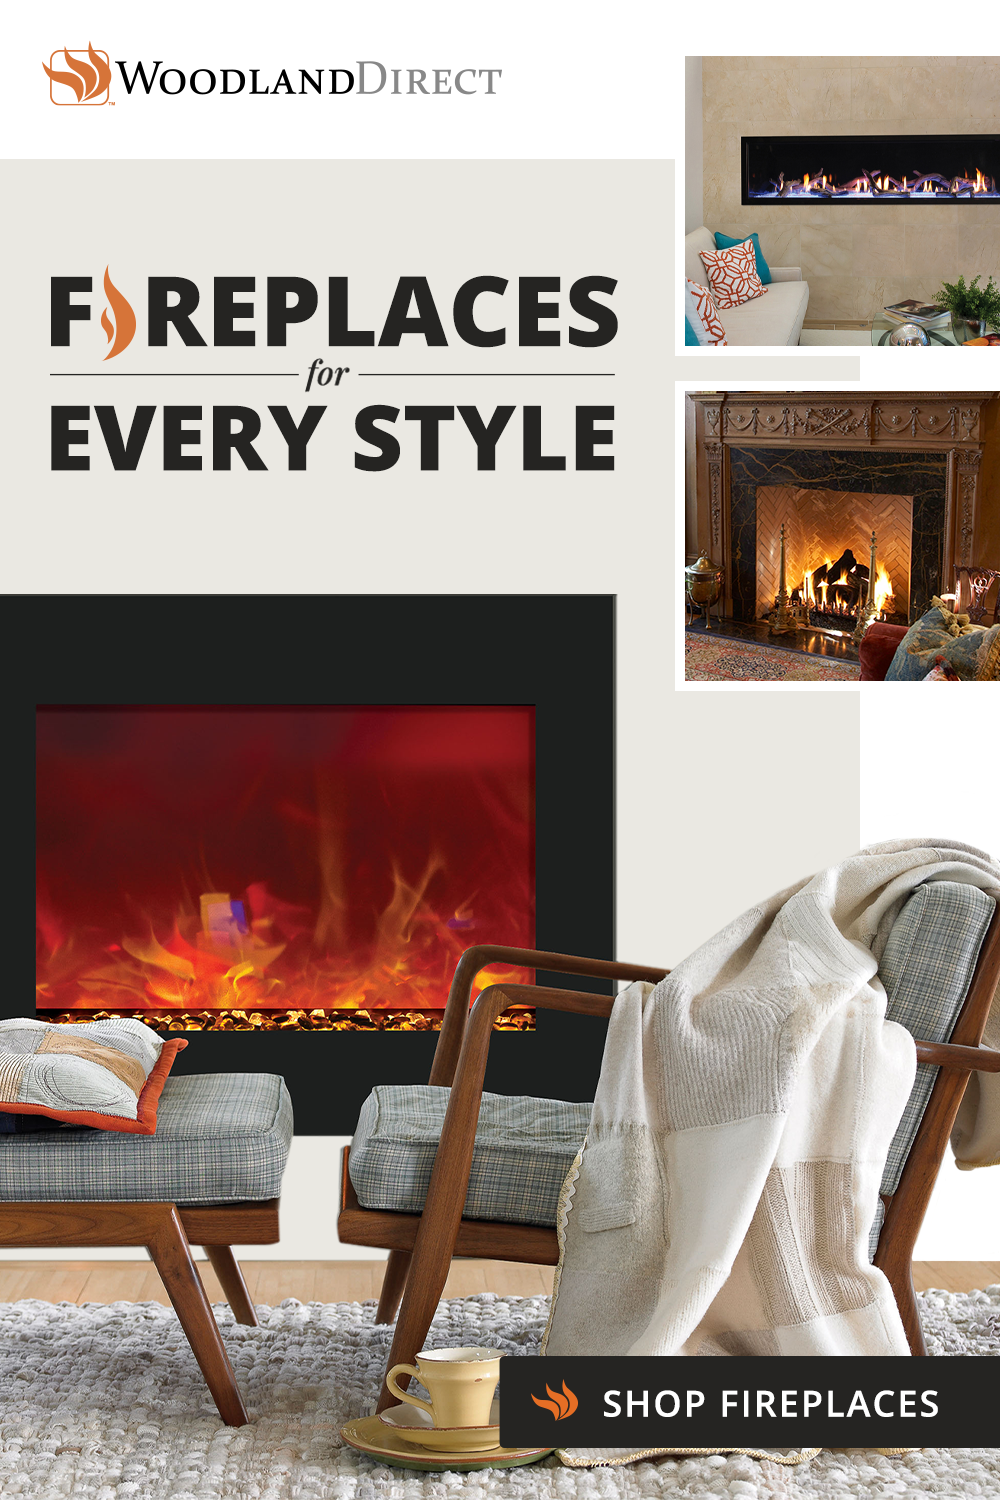 Fireplaces For Every Style Indoor Fireplace Fireplace Stores